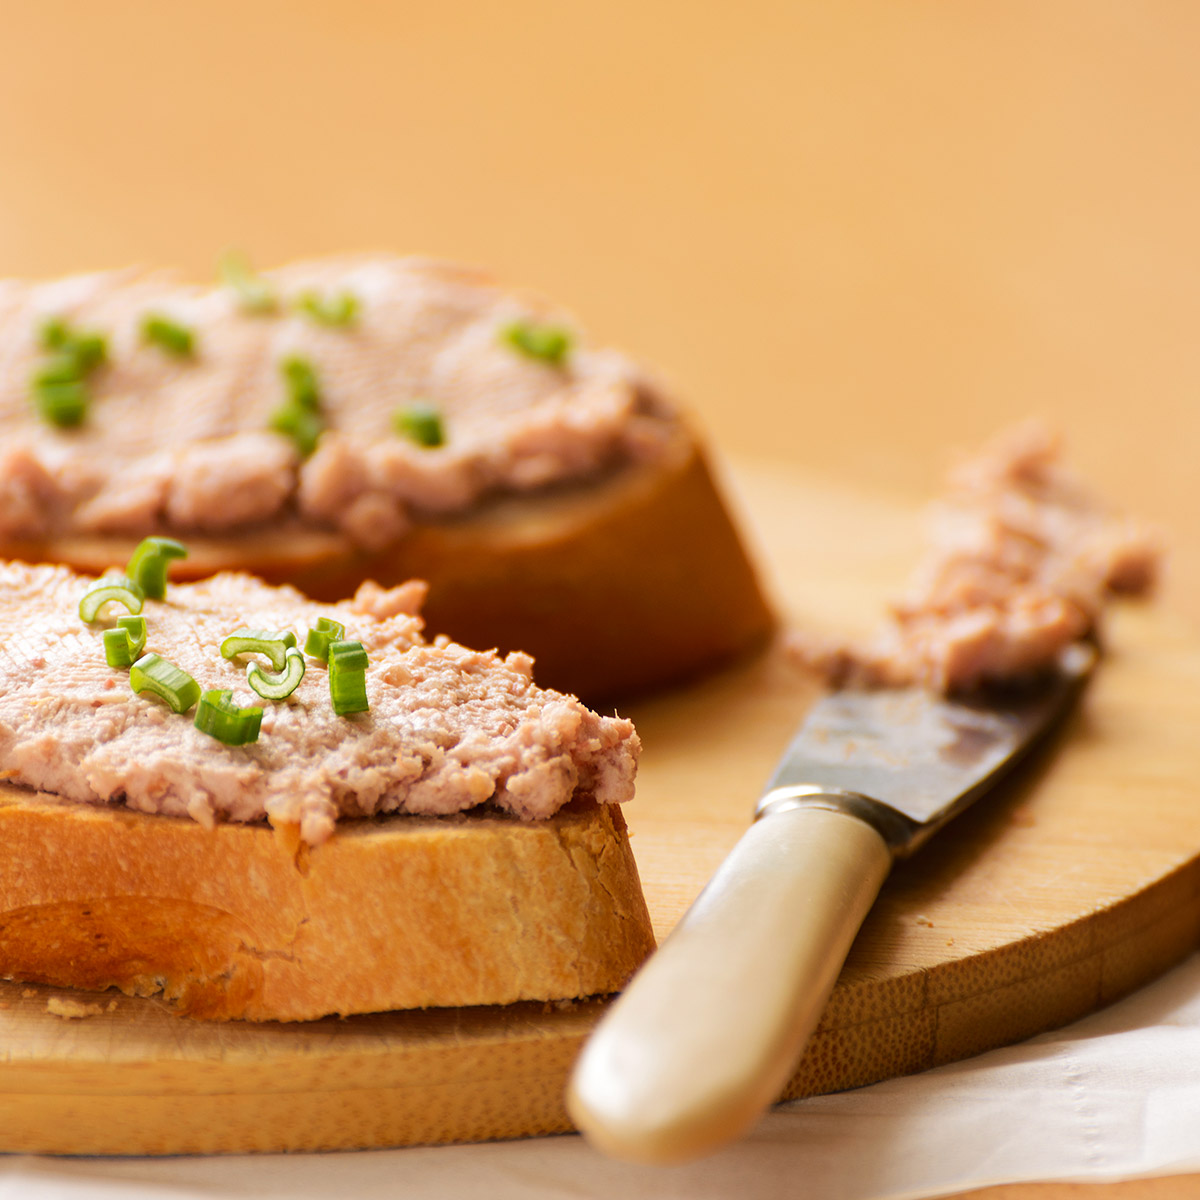 Stein Food suggestion - Pâté